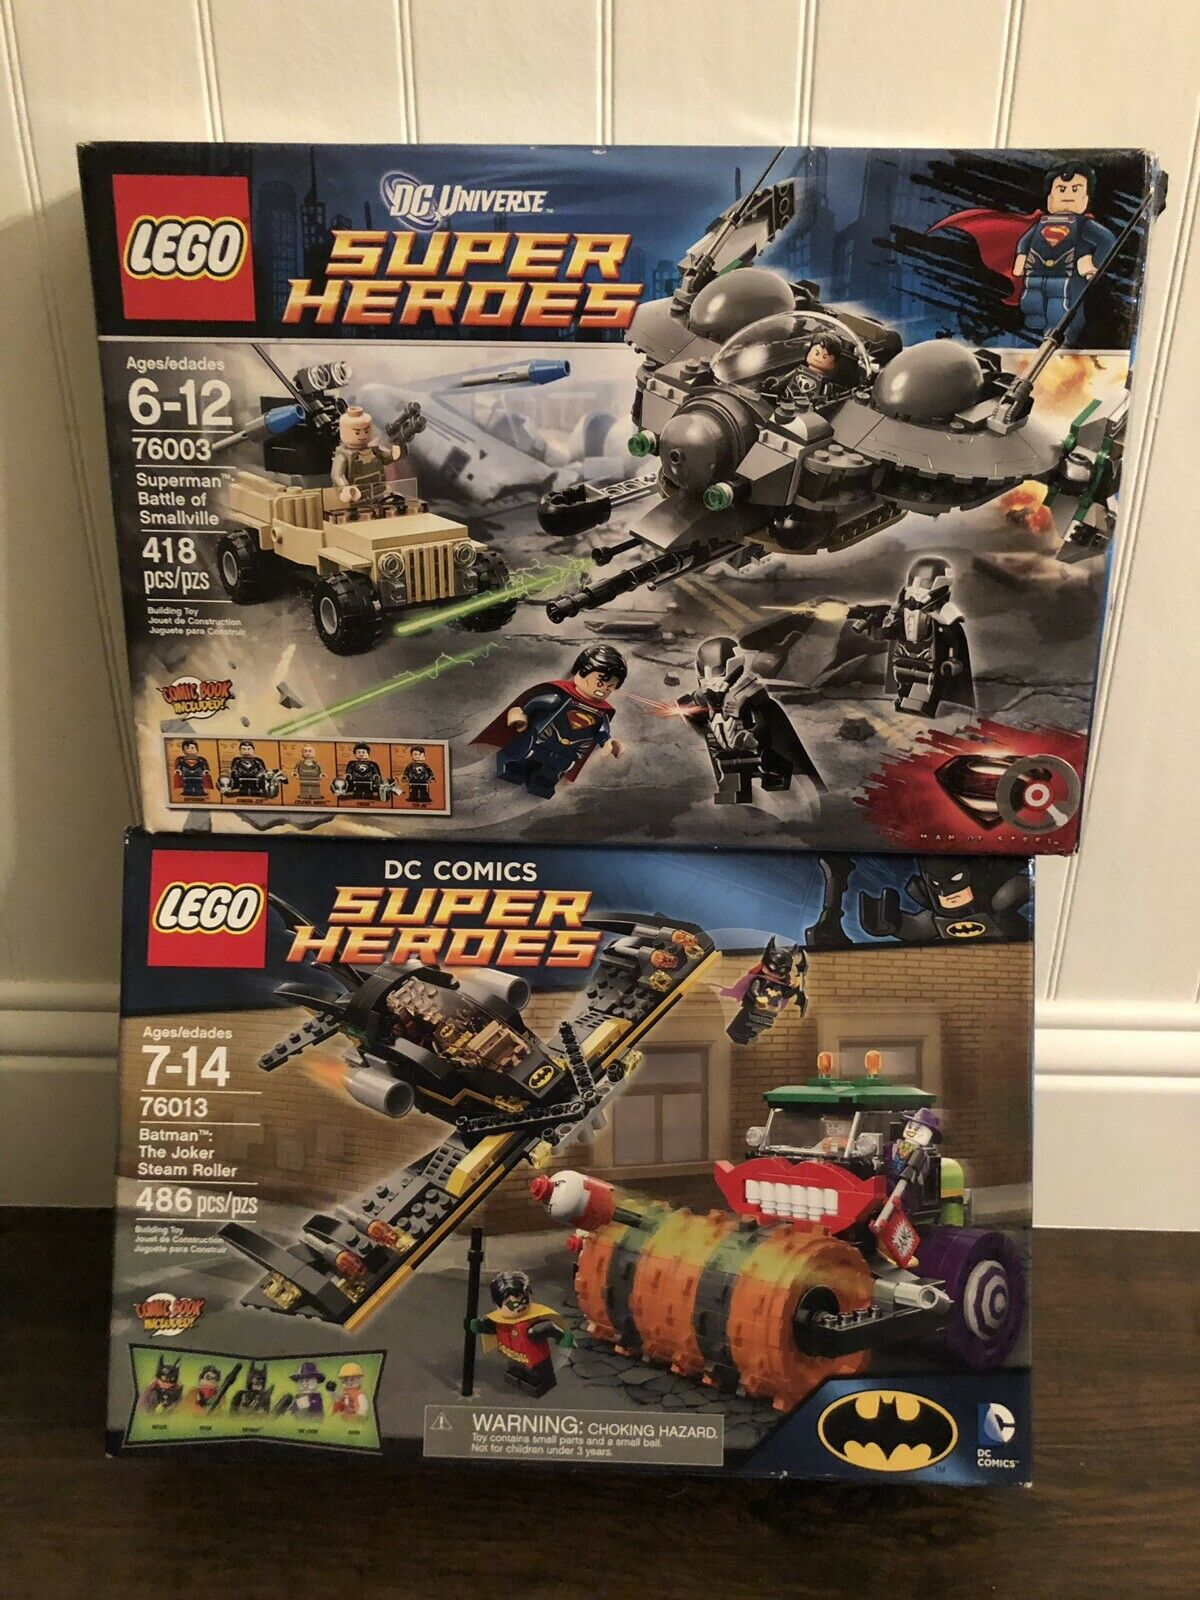 LEGO 76013 Batman The Joker Steam Roller AND 76003 Superman Battle of Smallville